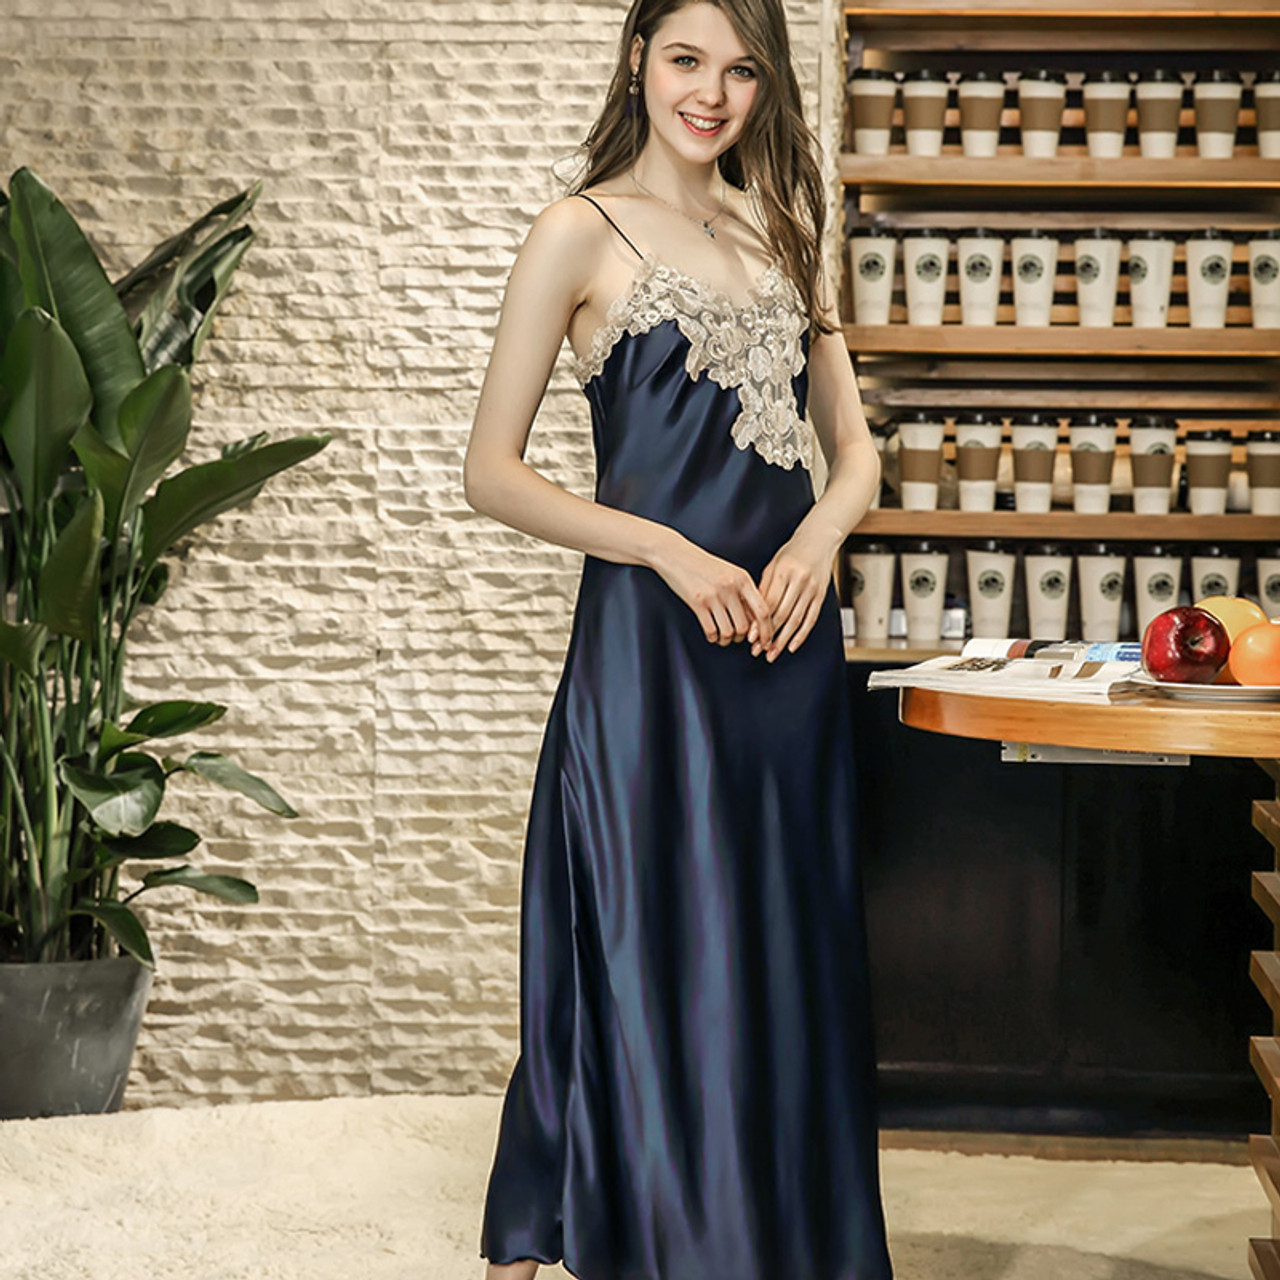 a079822f8 Ladies Sexy Silk Satin Nightgown Long Night Dress Lace Sleepshirt Summer  Nightdress V-neck Sleeping ...